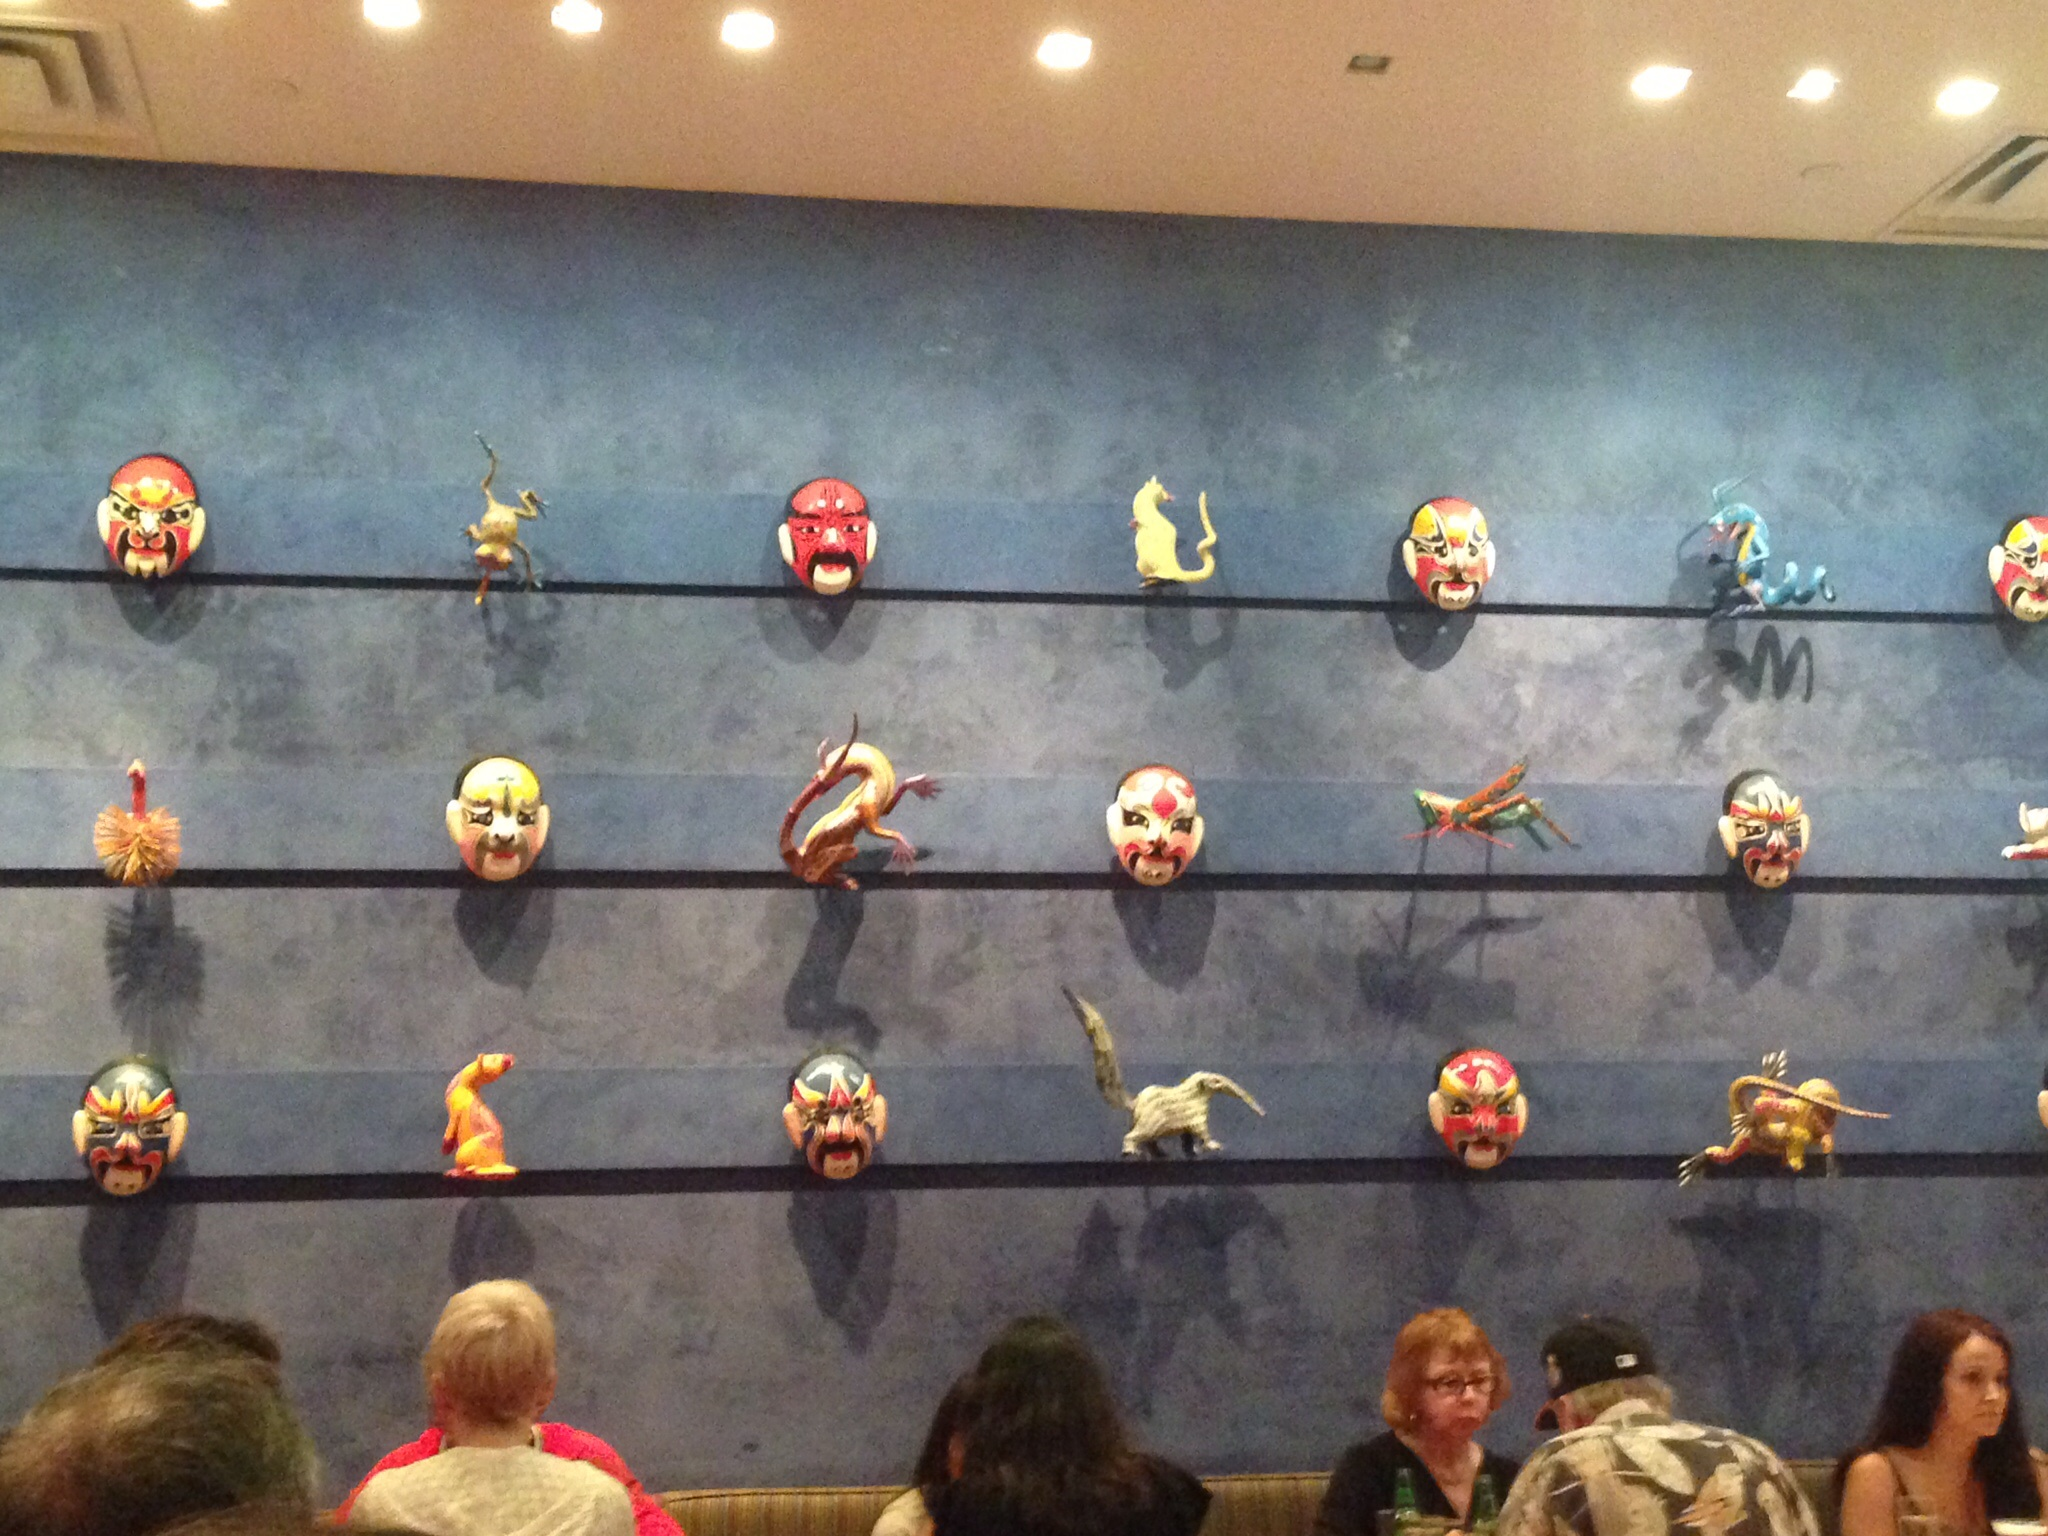 Masks on wall at China Poblano